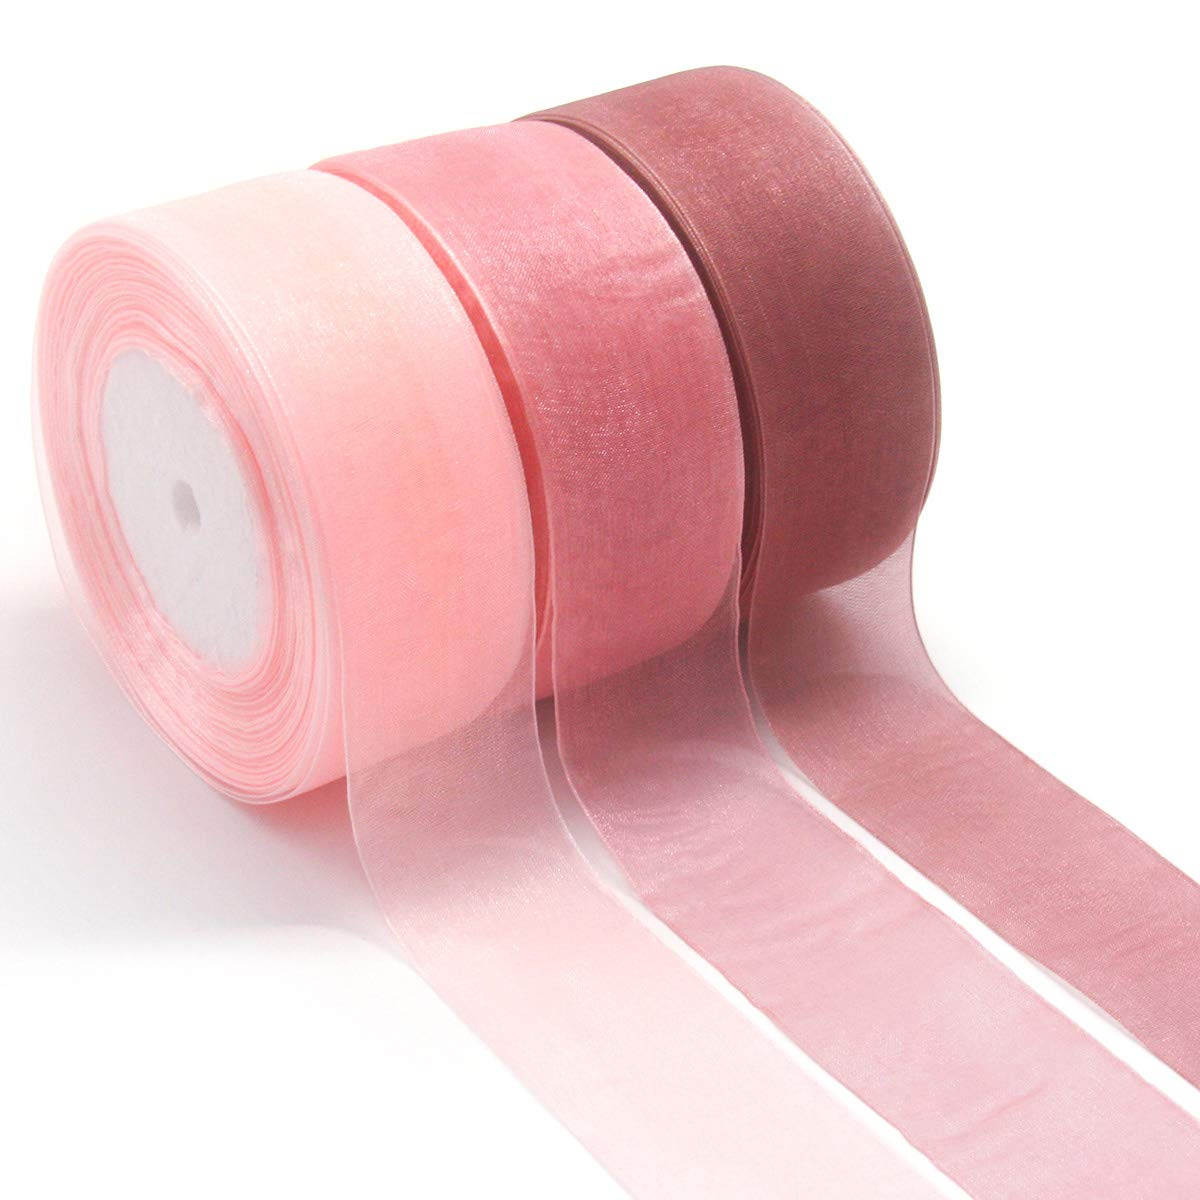 NICROLANDEE 3pcs Sheer Chiffon Ribbon 1.5Inch×49 Yards Dusty Rose Fading Ribbon Set for Wedding Gift Package Valentines Bouquets Wrapping Birthday Baby Shower Home Decor Wreath Decorations Fabric by NICROLANDEE (Image #1)